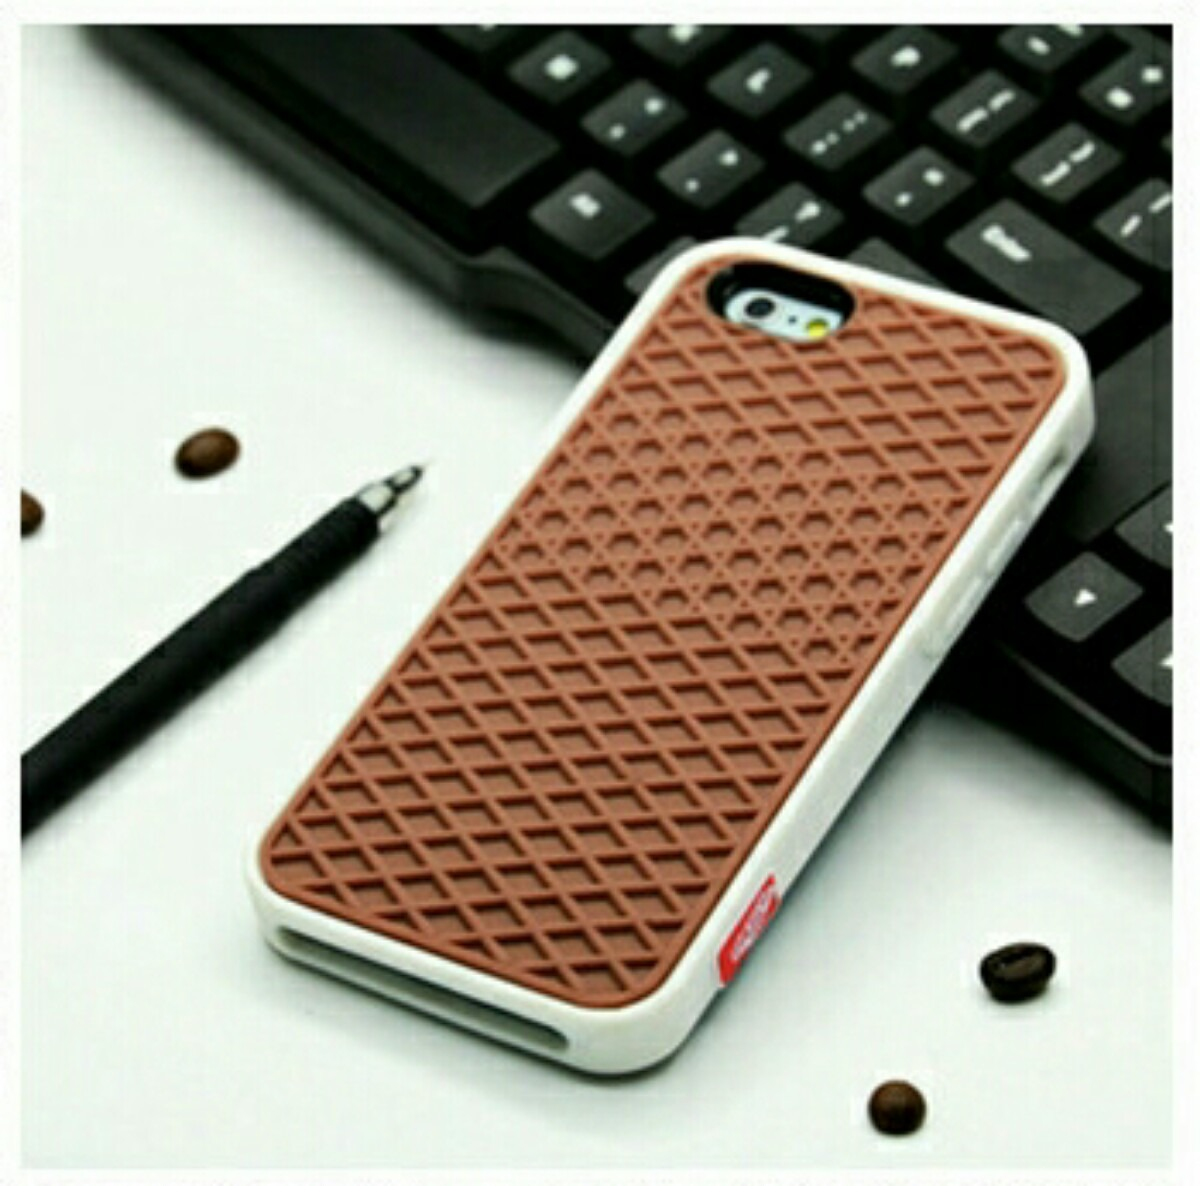 Capa Case Vans Iphone 5 Rubber Waffle Case Vans Mlb O 3363145724 ...